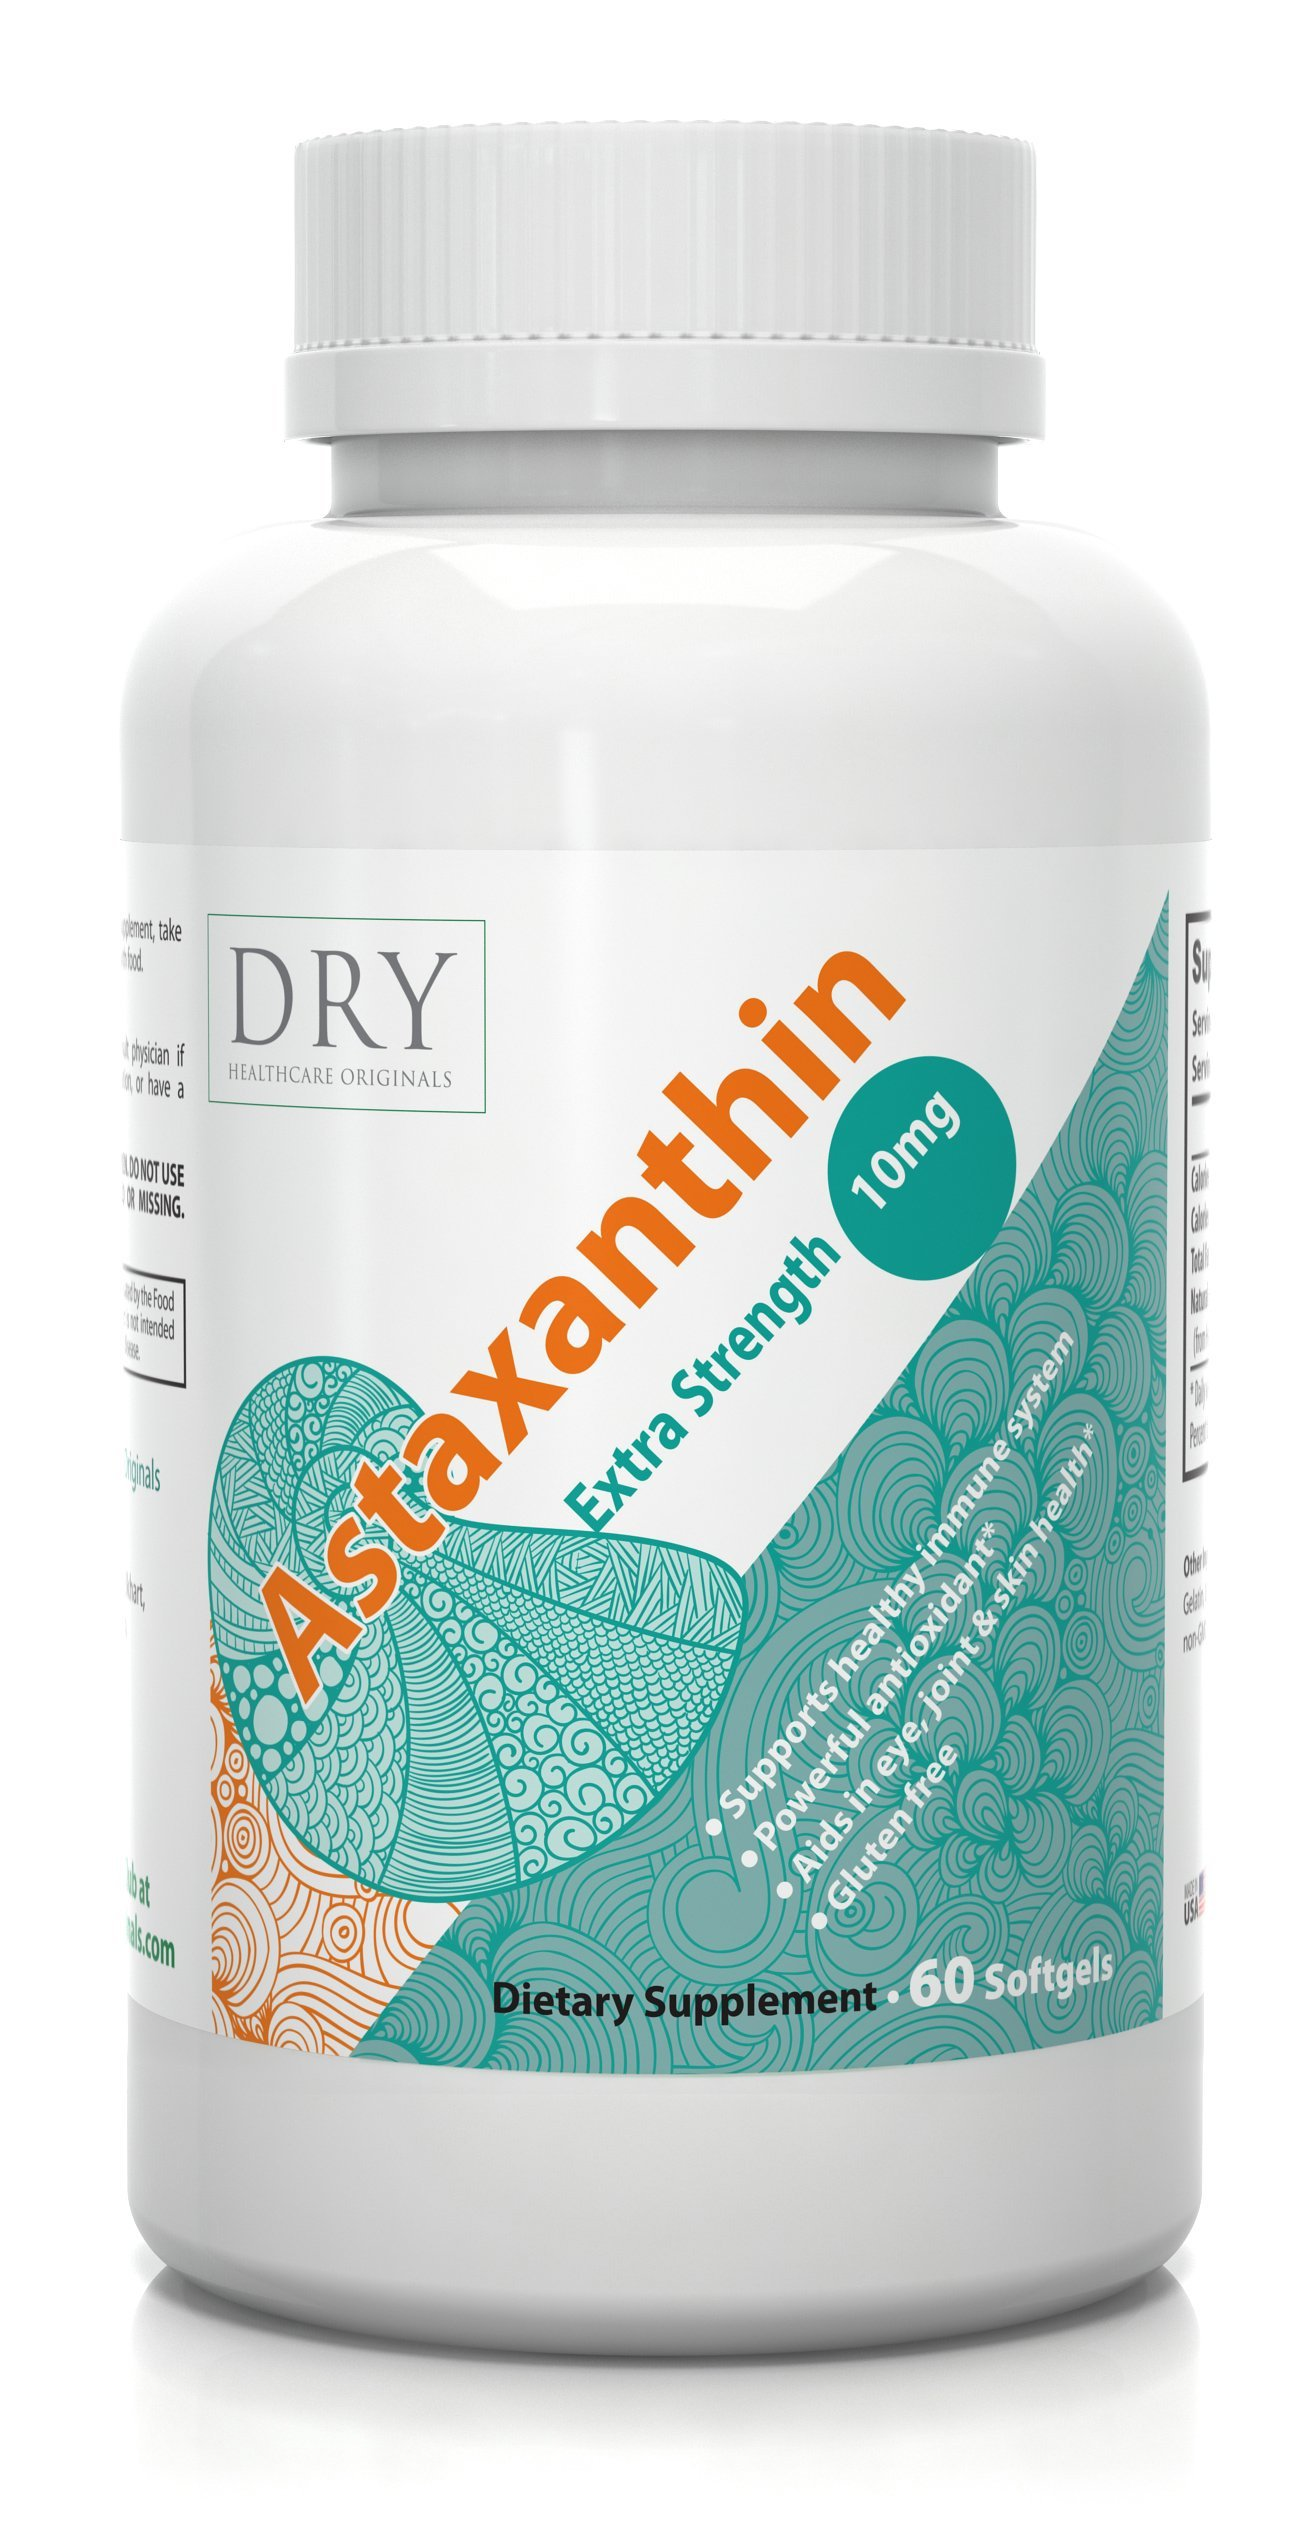 #1 High Potency Premium Astaxanthin 10 mg - Powerful Antioxidant Now - Free Radical Scavenger - ALL Natural Astaxanthin Gold - Supports Immune System - Boosts Eye, Skin & Joints Health - 60 Softgels